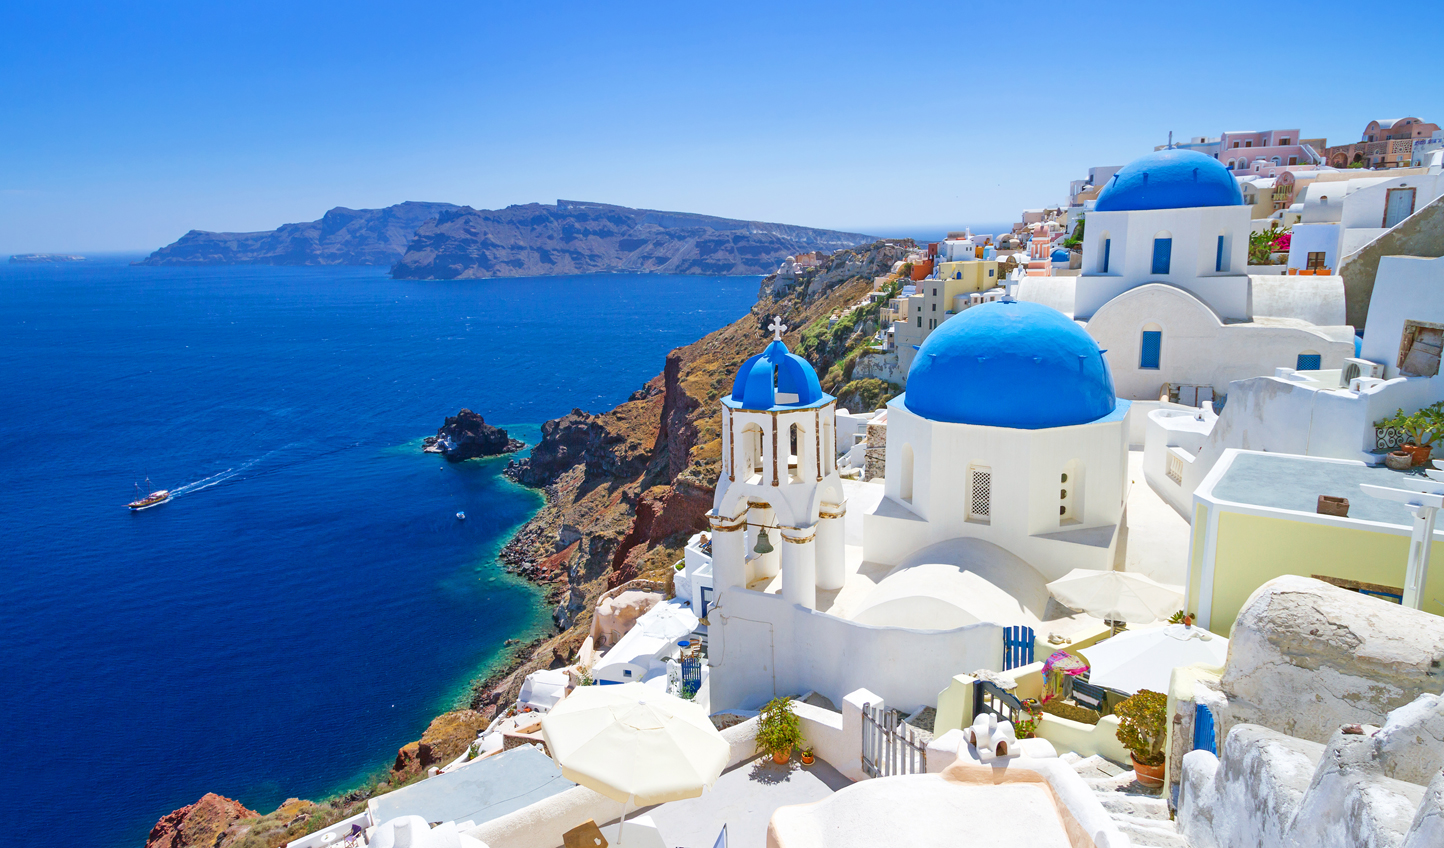 Santorini's beautiful blue-domed churches